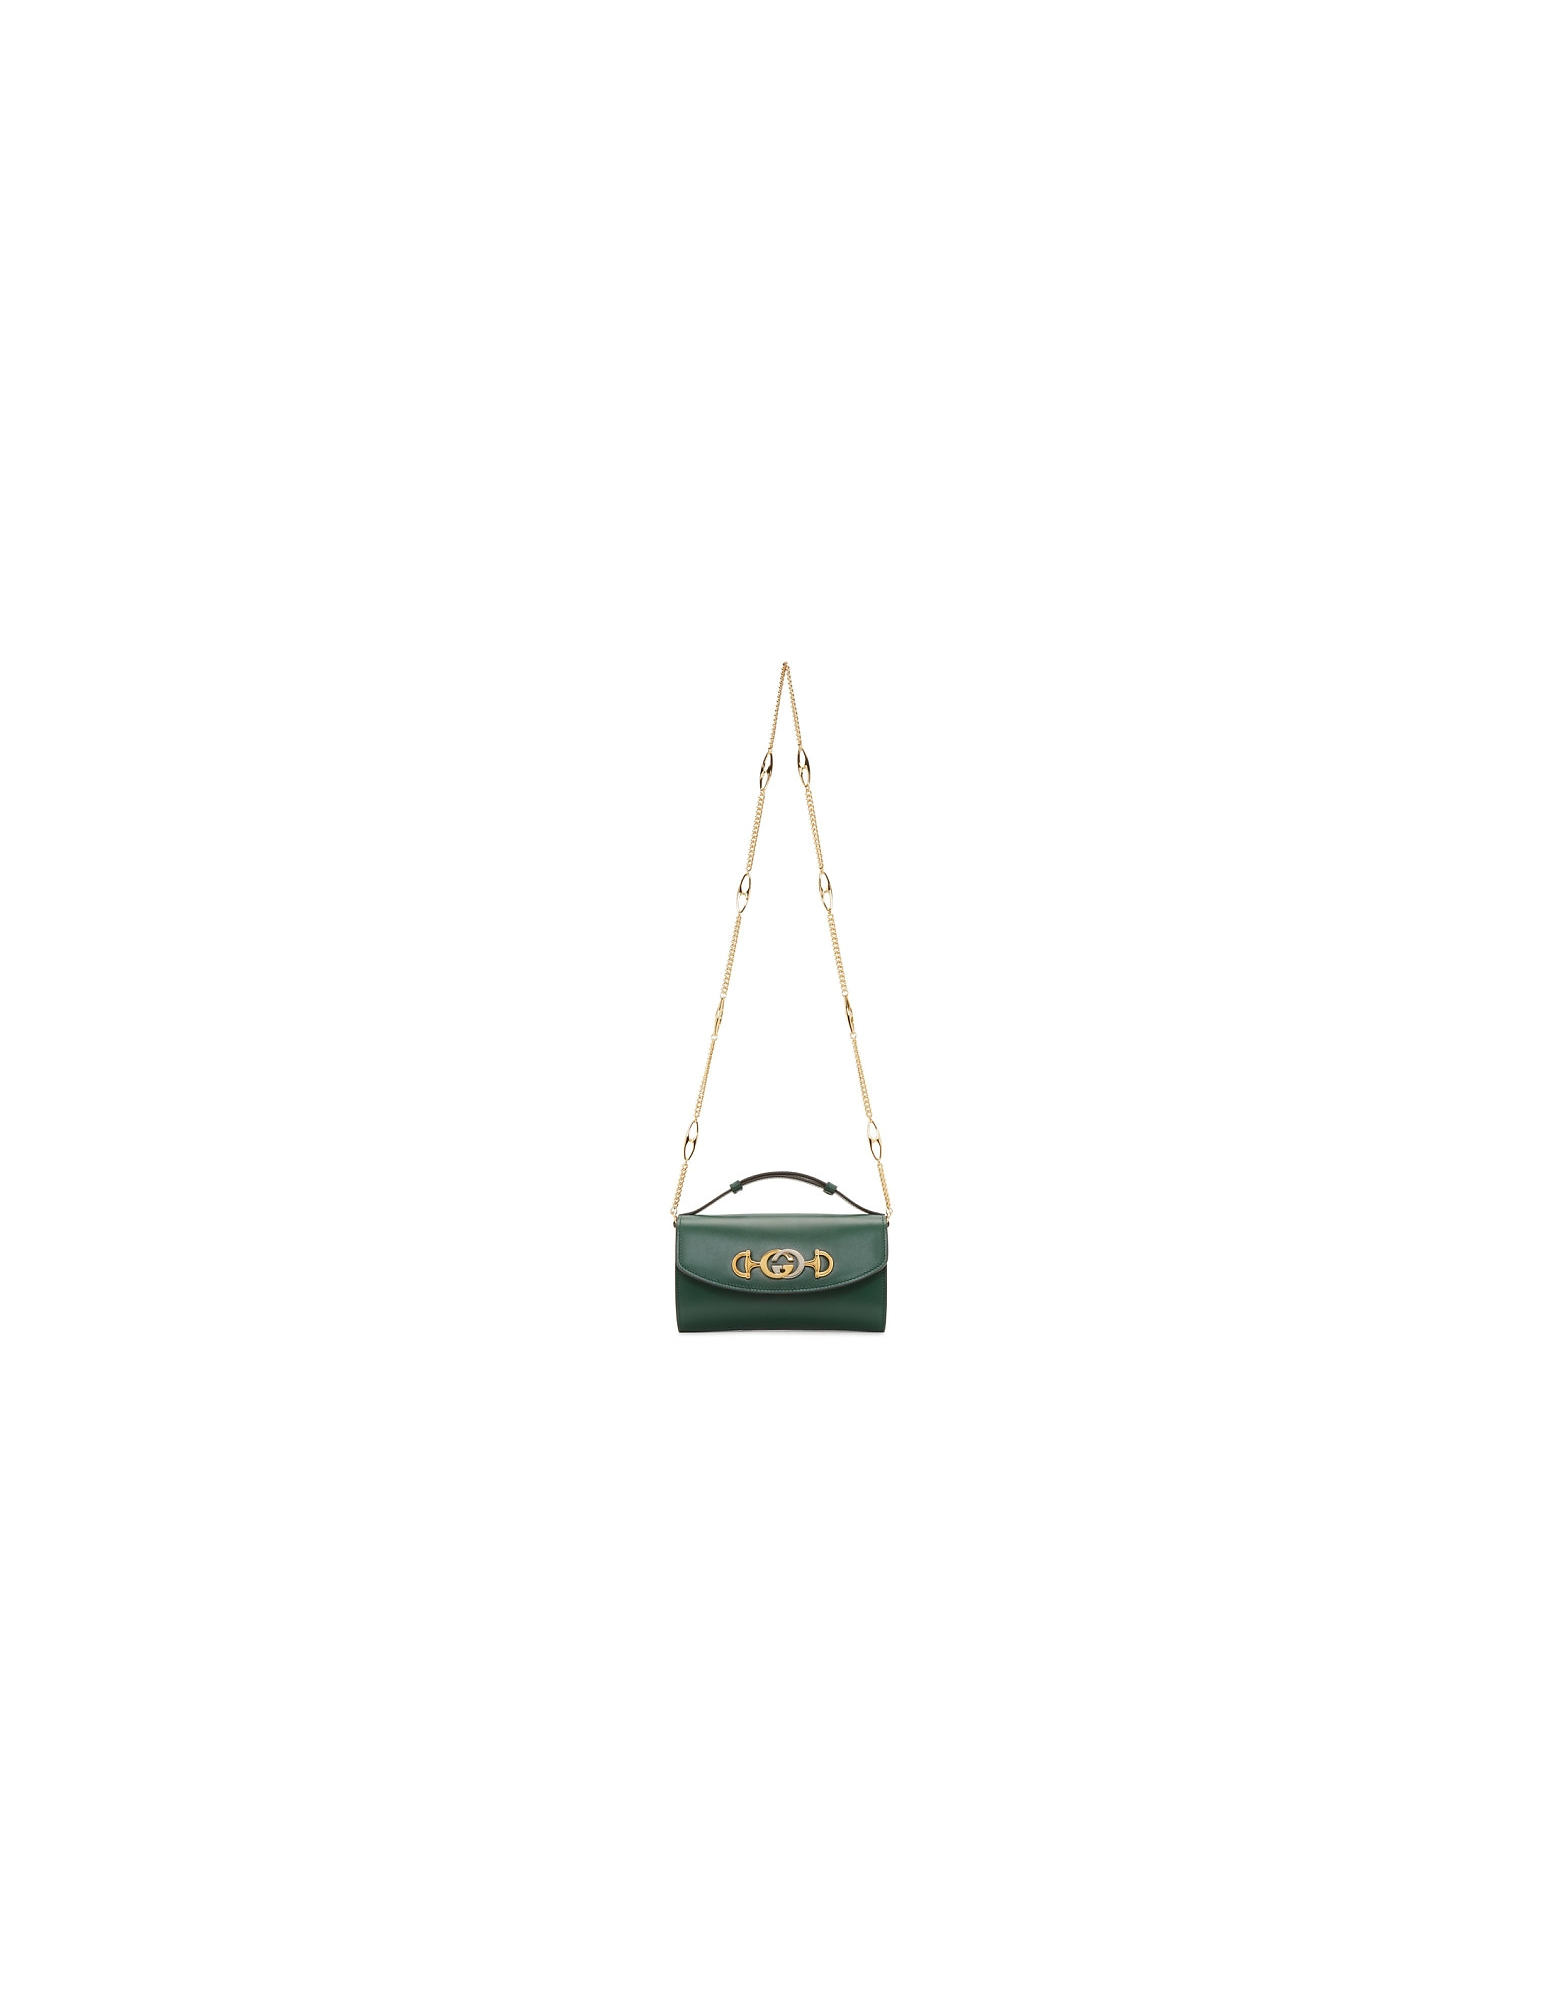 Gucci Designer Handbags, Green Mini Zumi Bag